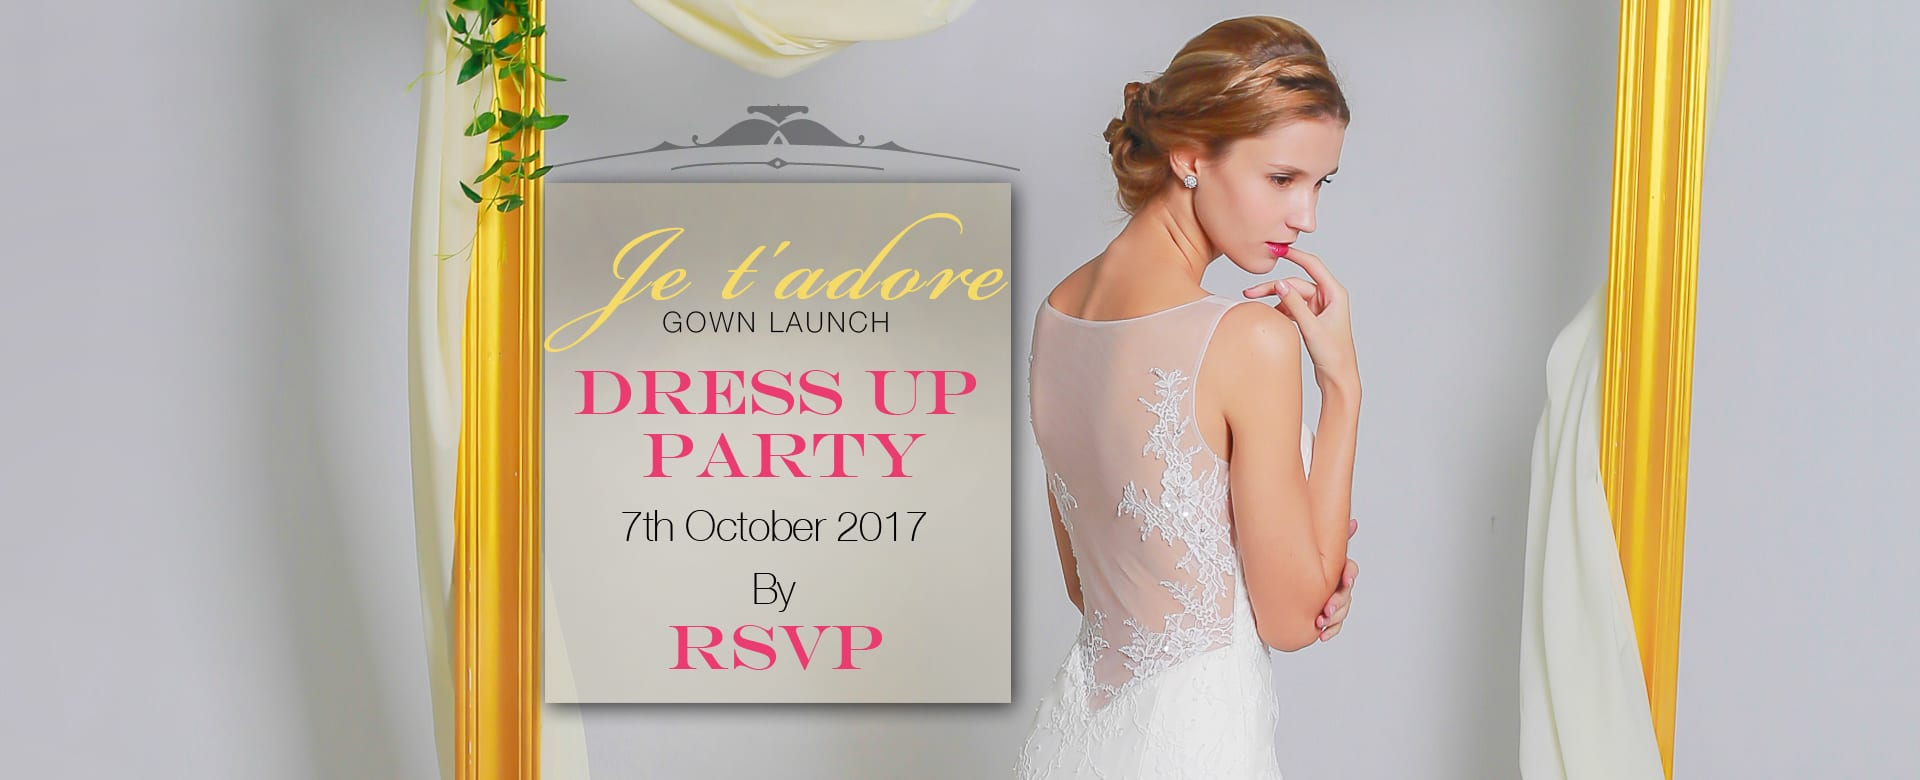 Je t'adore – Bridal Gown Launch – Dress up Party